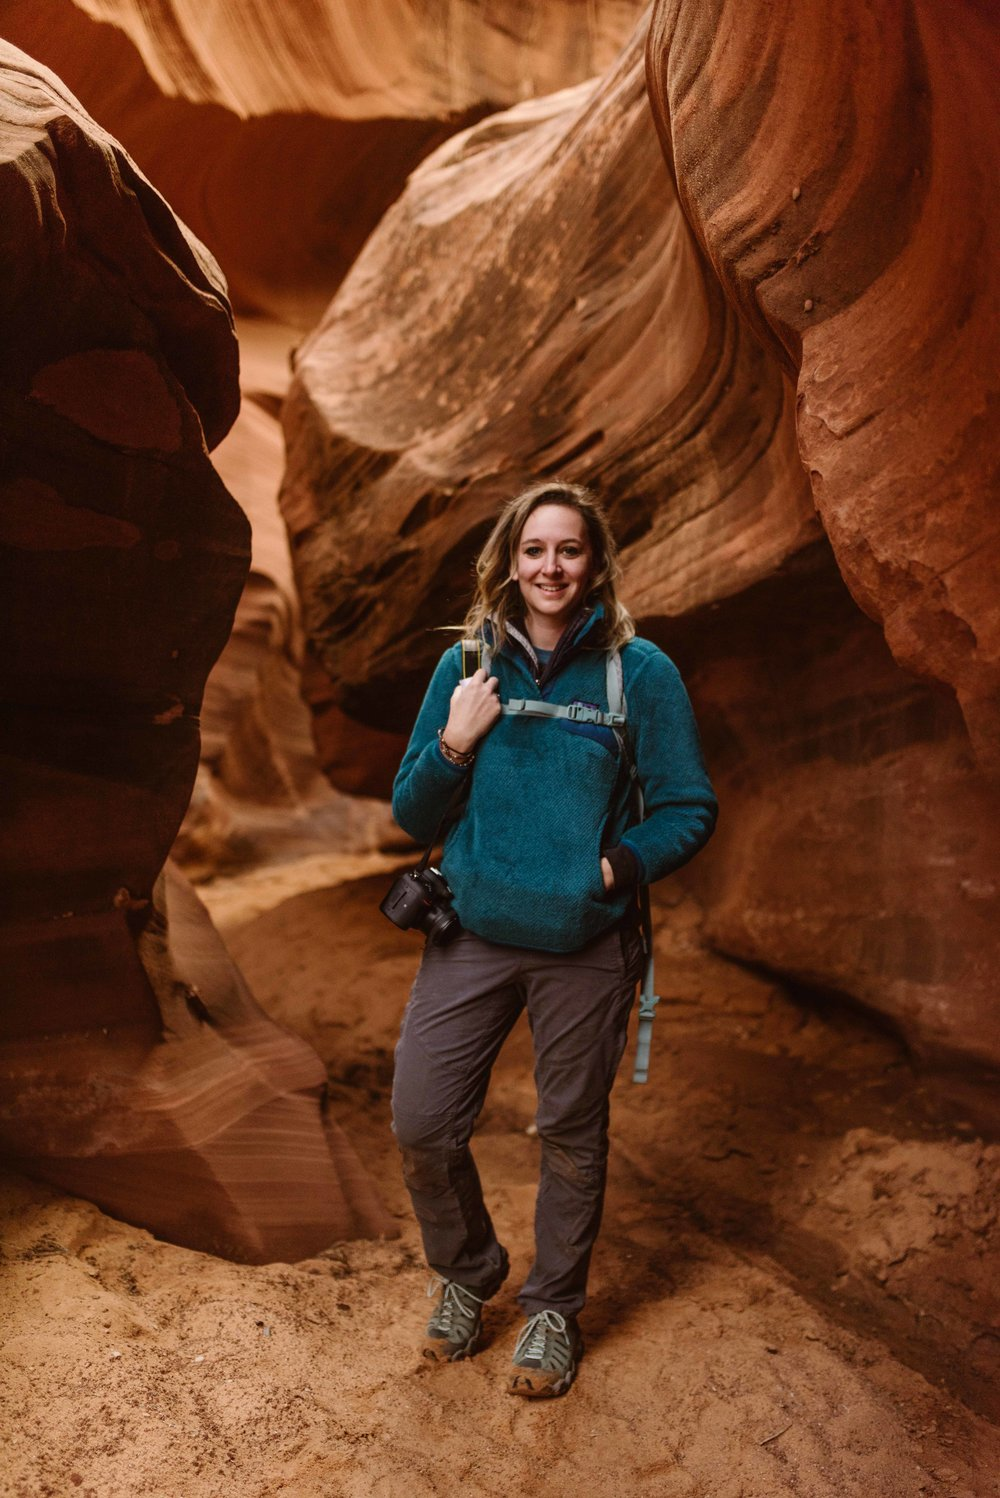 I can not wait to share the rest! - The slot canyons were by far one of the coolest things I have experienced since moving to Arizona. I will be blogging another set from the slot canyons soon, so stay tuned! To keep up to date on the happenings with Traci Edwards Photography then join the mailing list ! :)